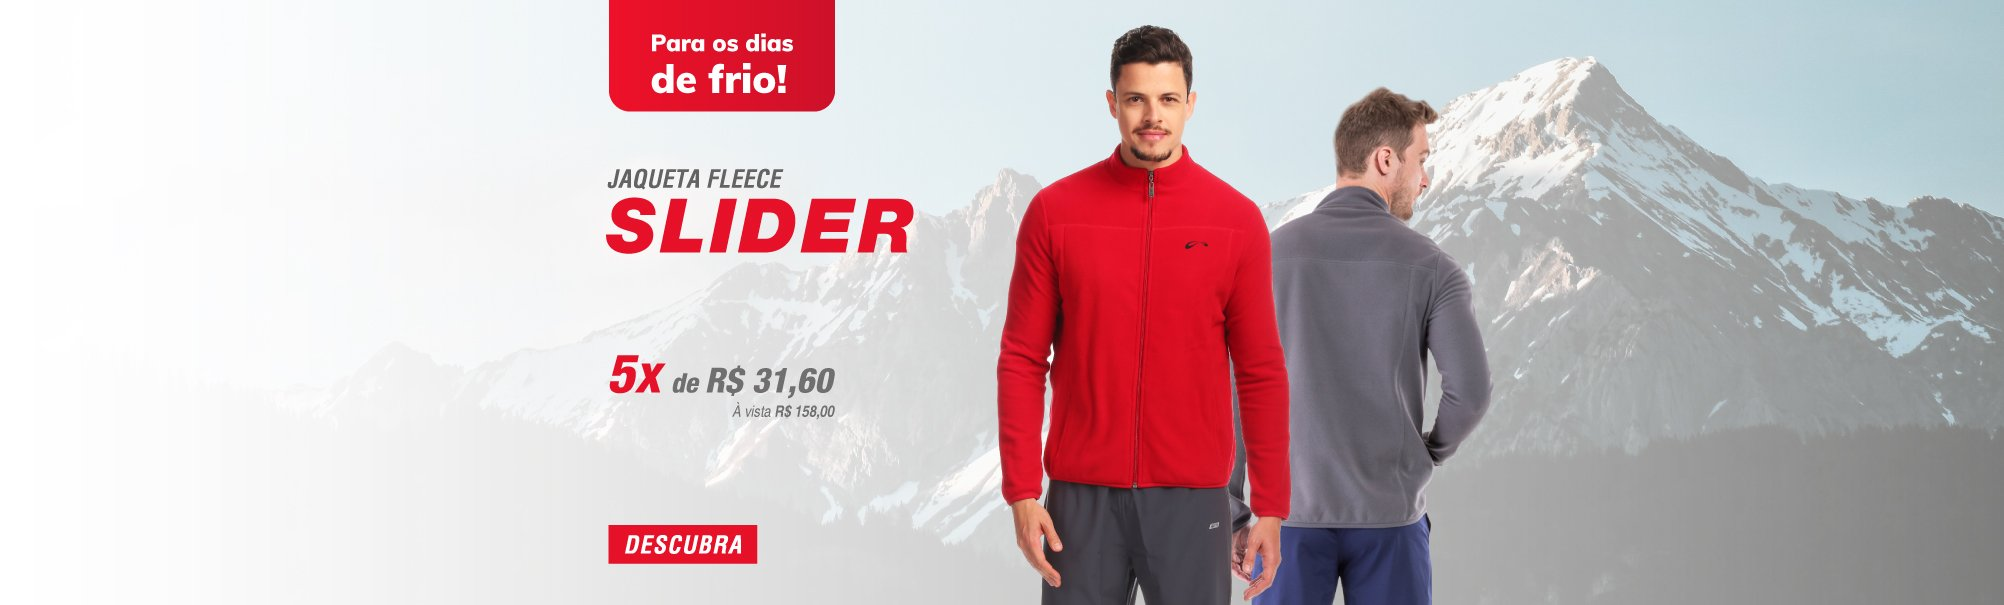 Jaqueta Fleece Slider